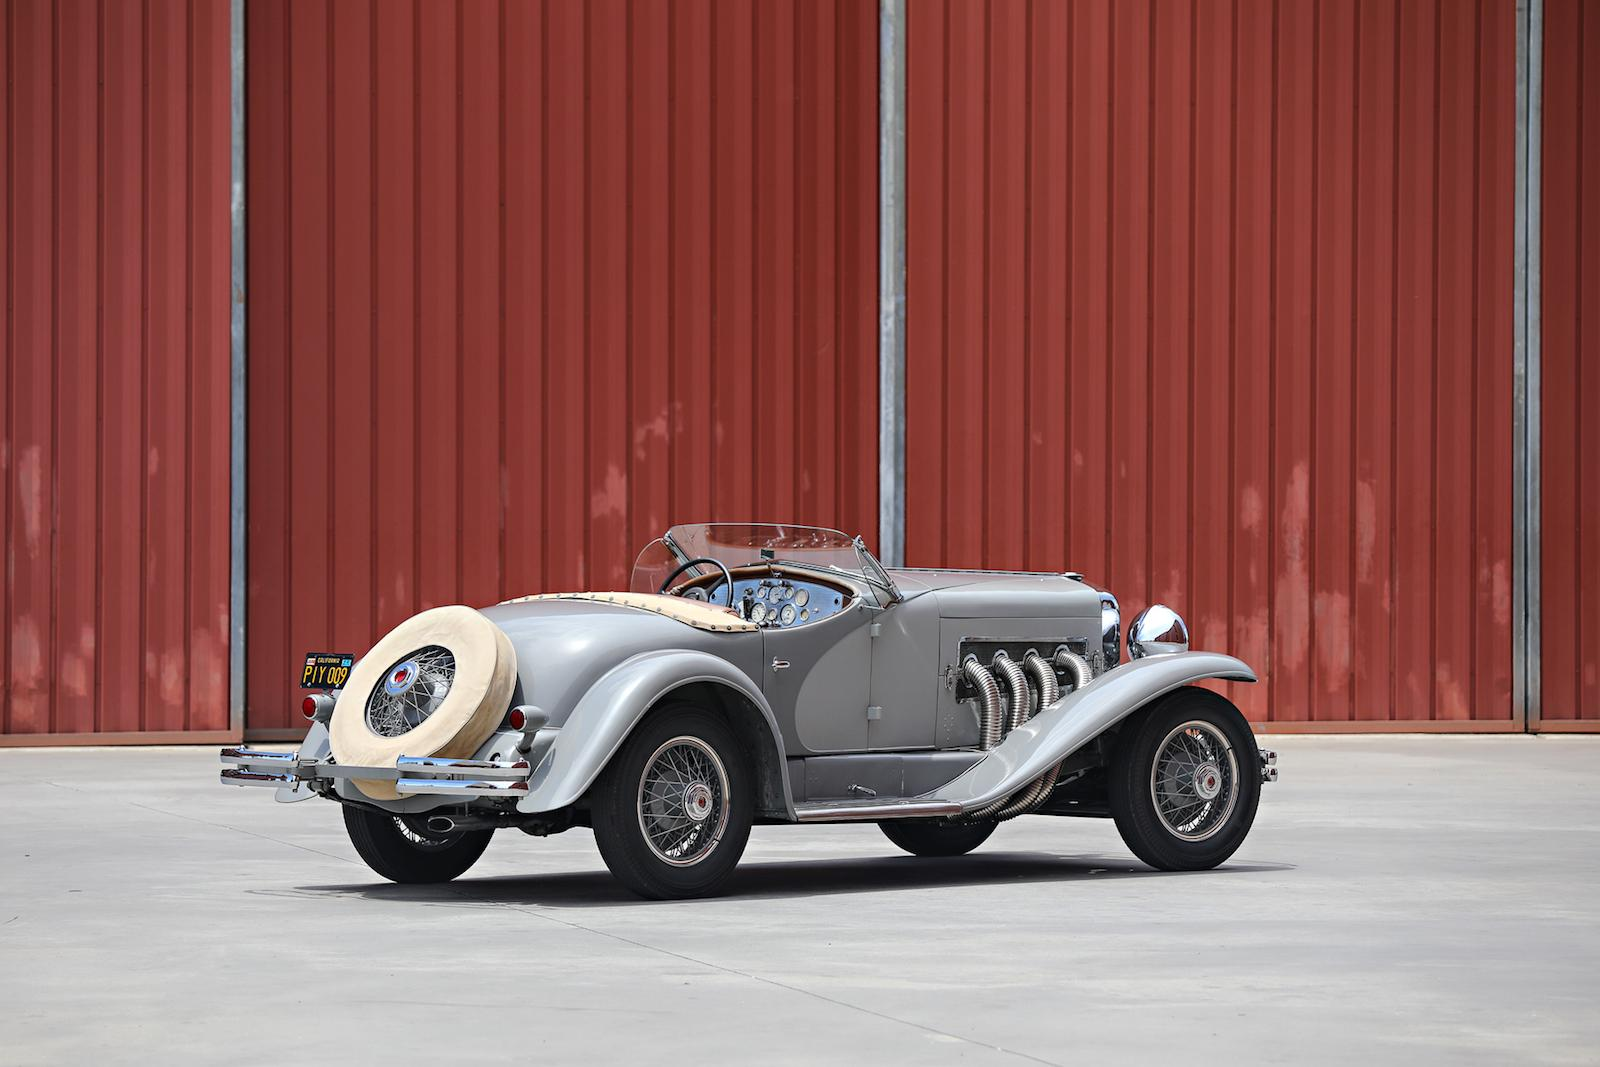 1935 duesenberg ssj becomes most expensive american car ever sold at auction autoevolution. Black Bedroom Furniture Sets. Home Design Ideas